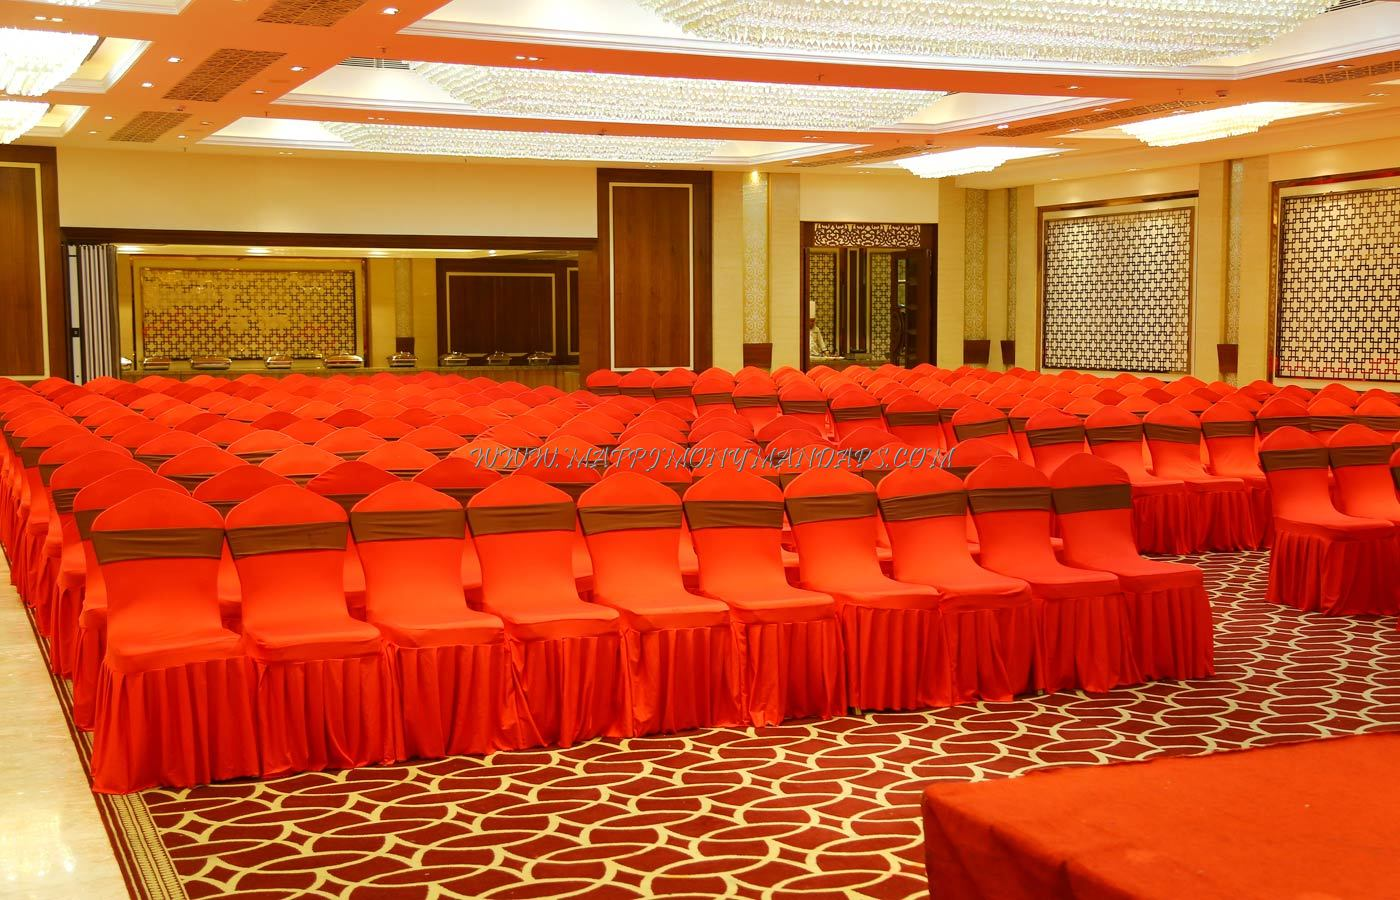 Find the availability of the The Platinum Hotel-Tiara Banquet Hall (A/C) in Himayat Nagar, Hyderabad and avail special offers